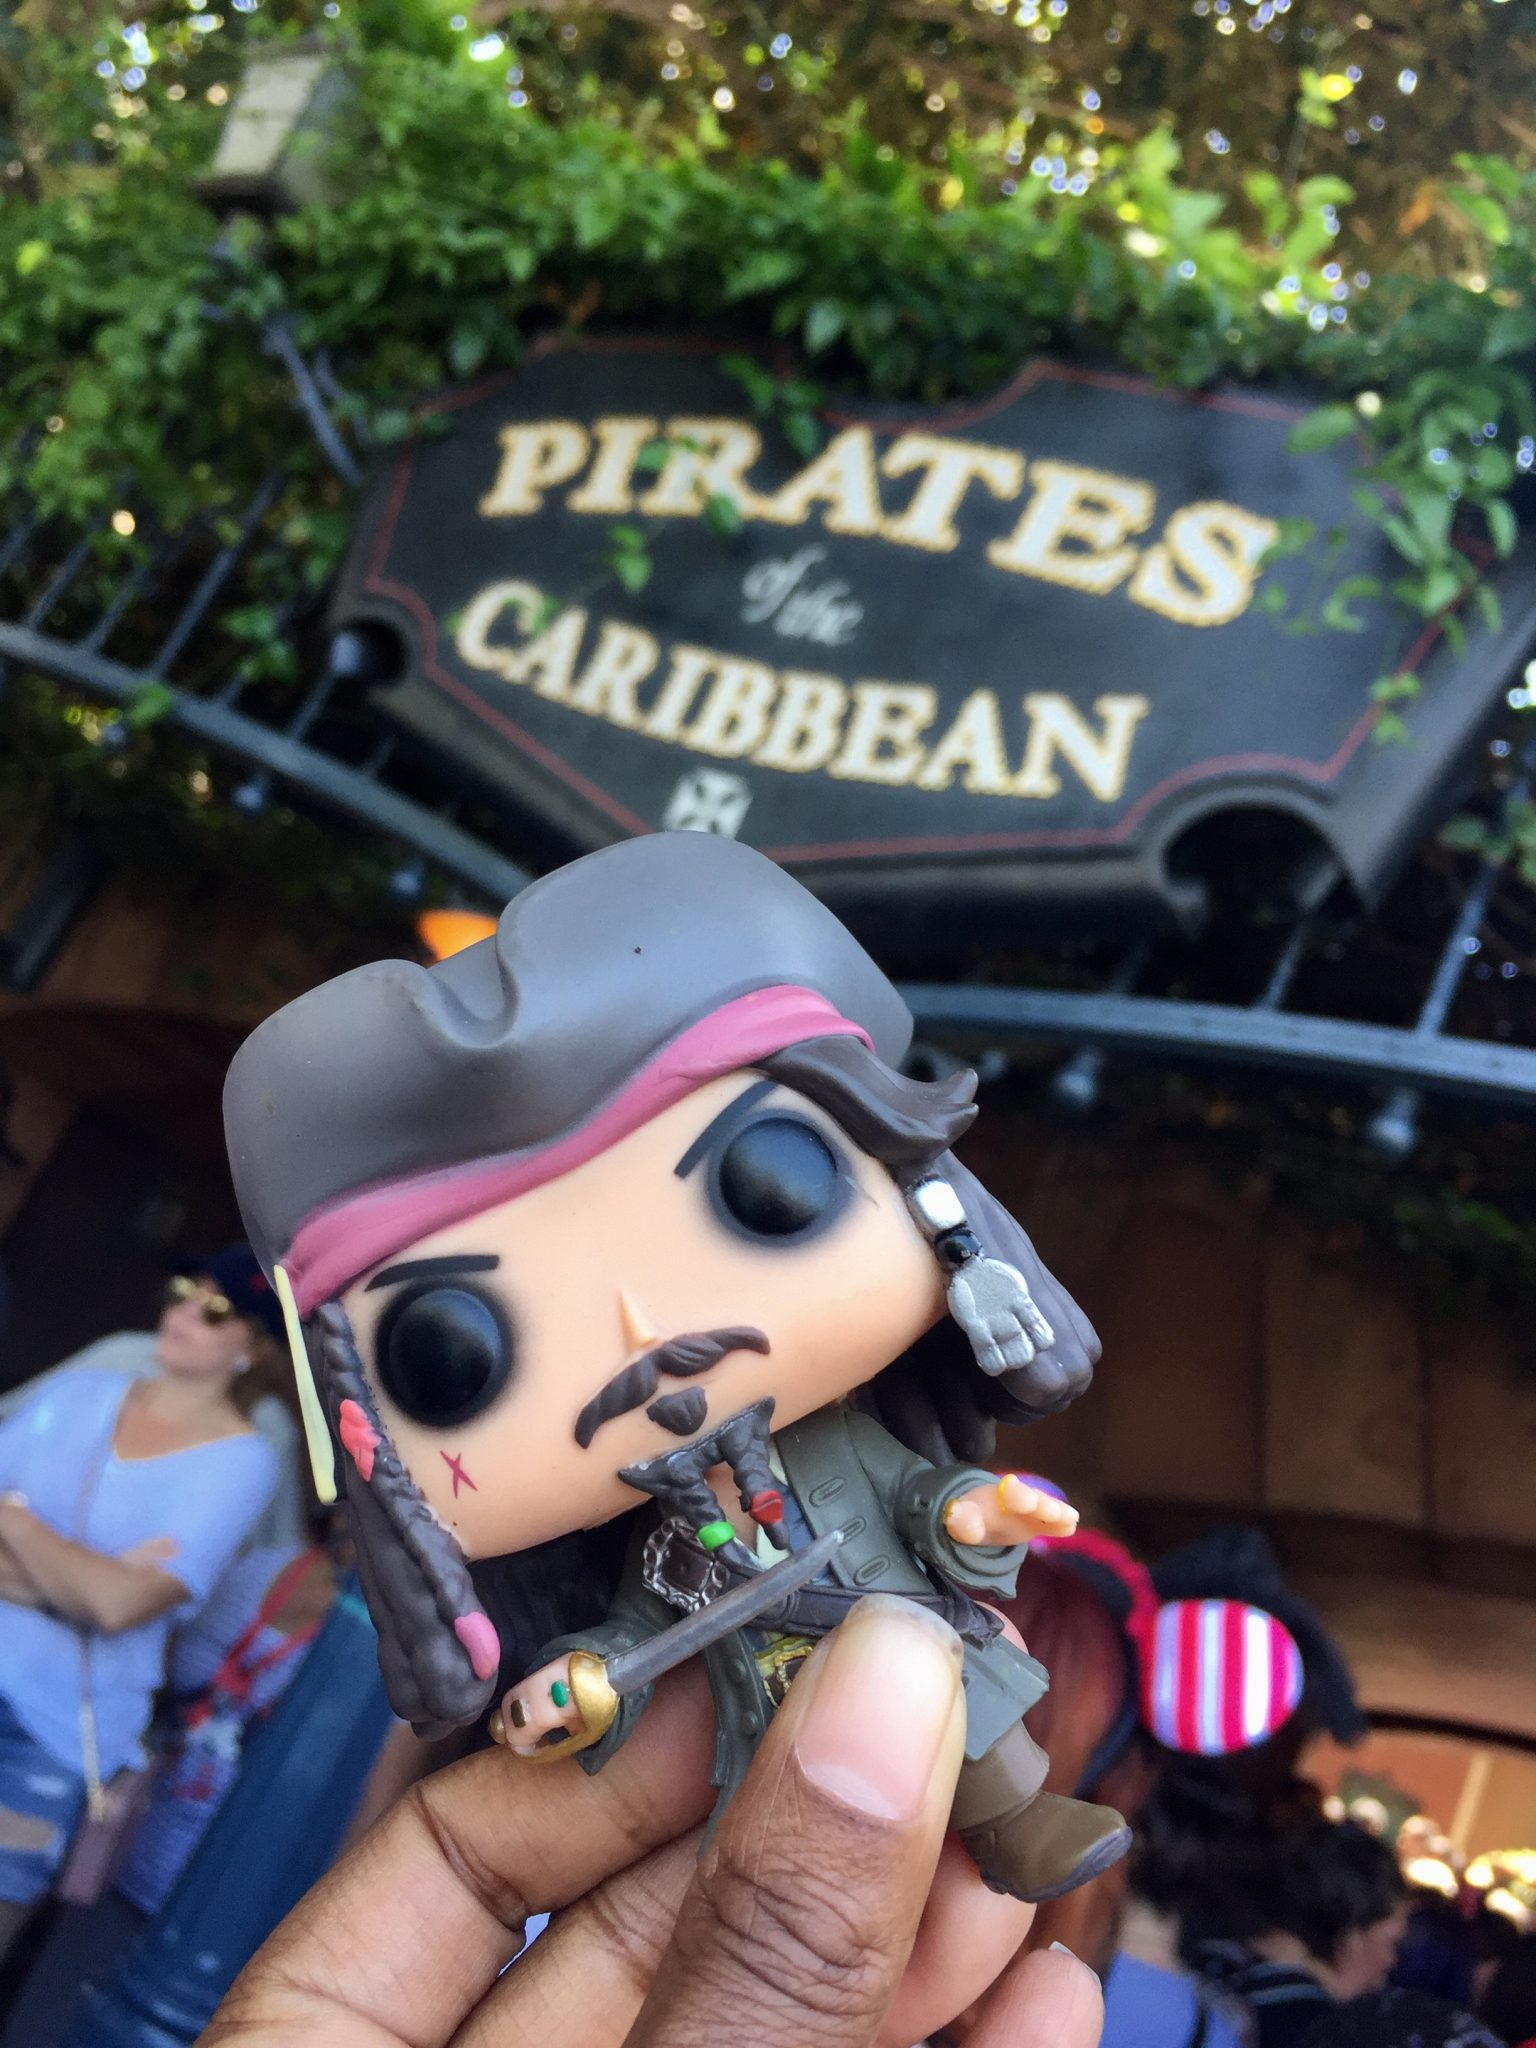 """My Disneyland """"Pirates of the Caribbean"""" Ride Experience"""